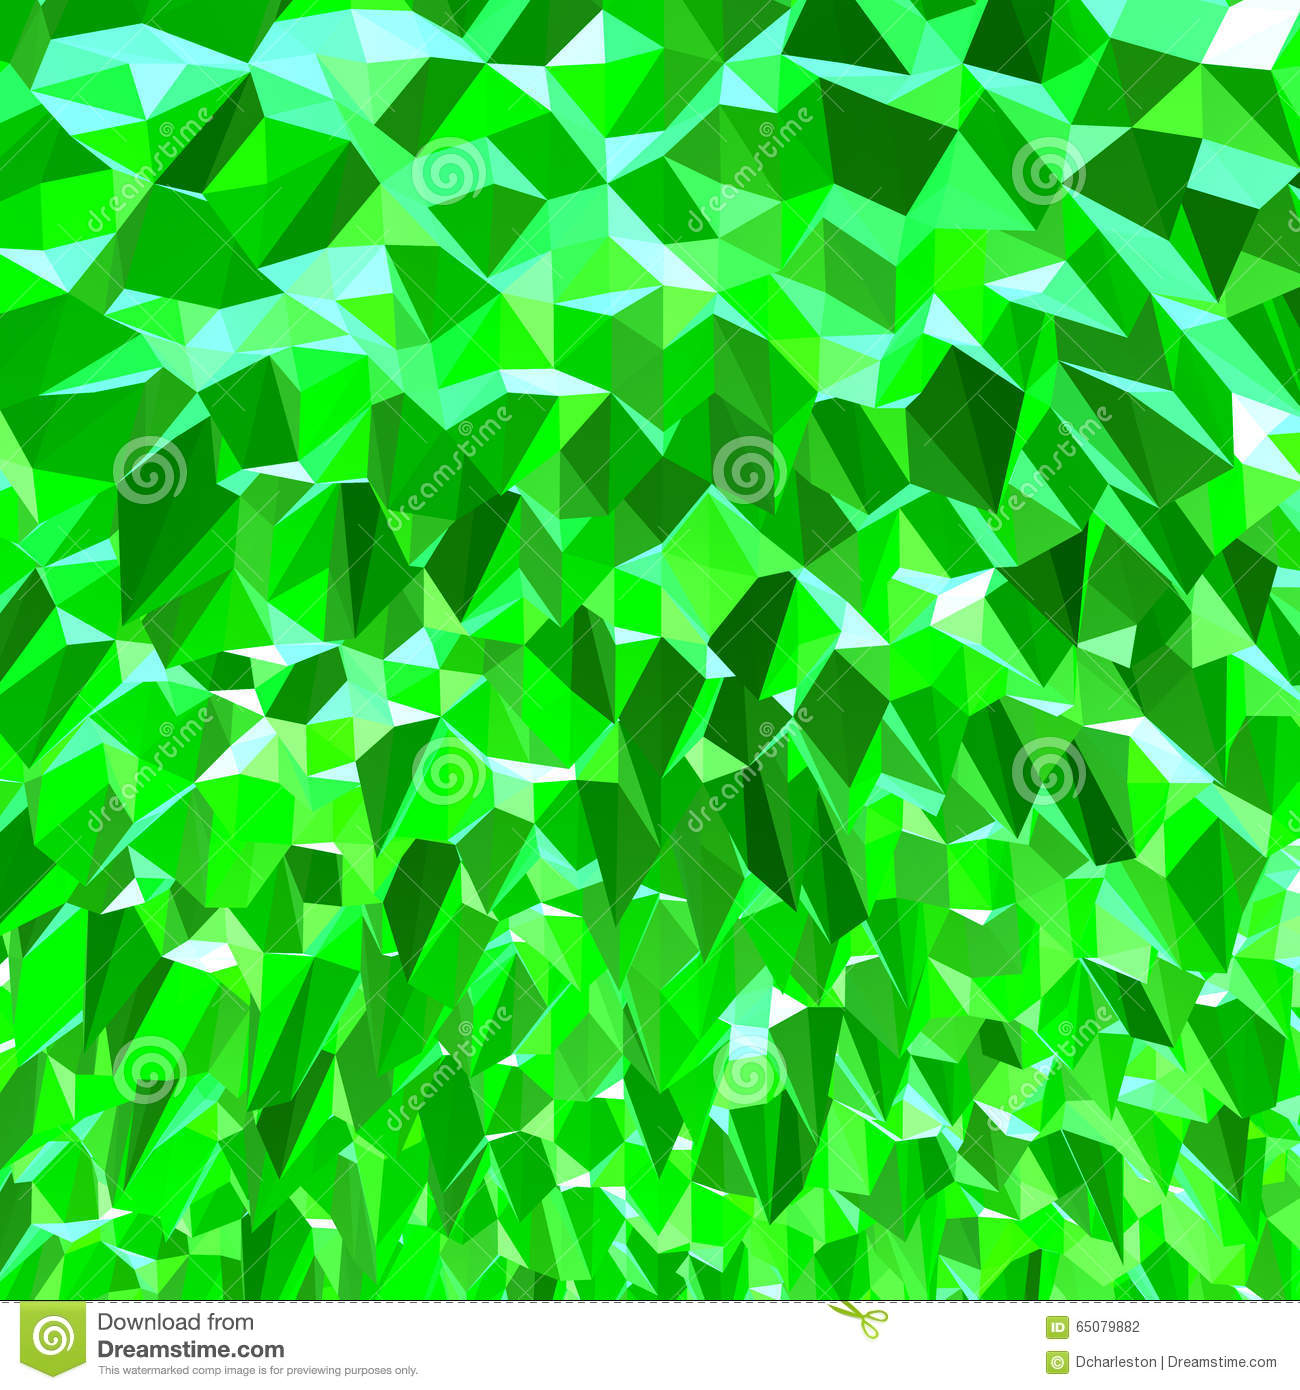 kefpdj emerald photo jewel alamy gem stock